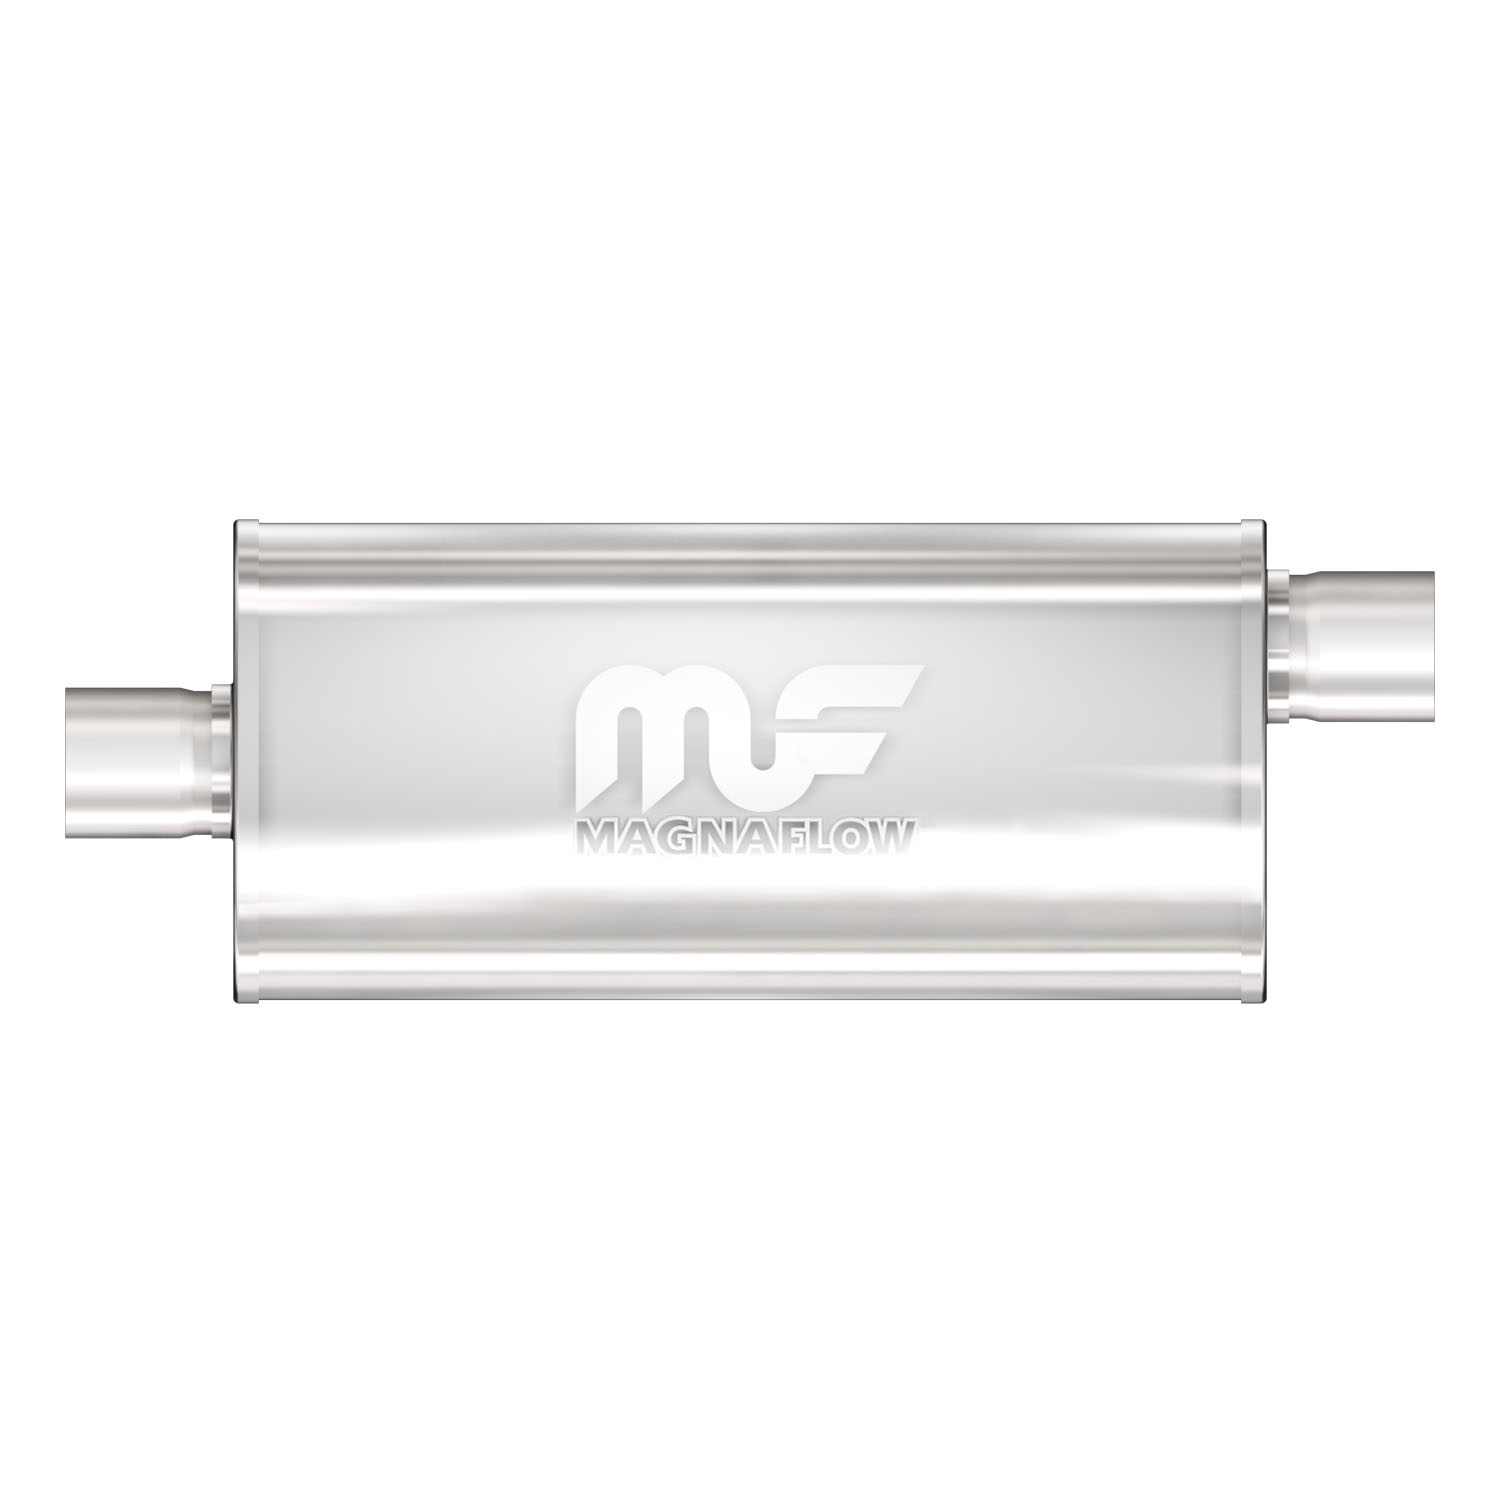 12229 Magnaflow Performance Exhaust Muffler 5 Inch x 8 Inch Oval